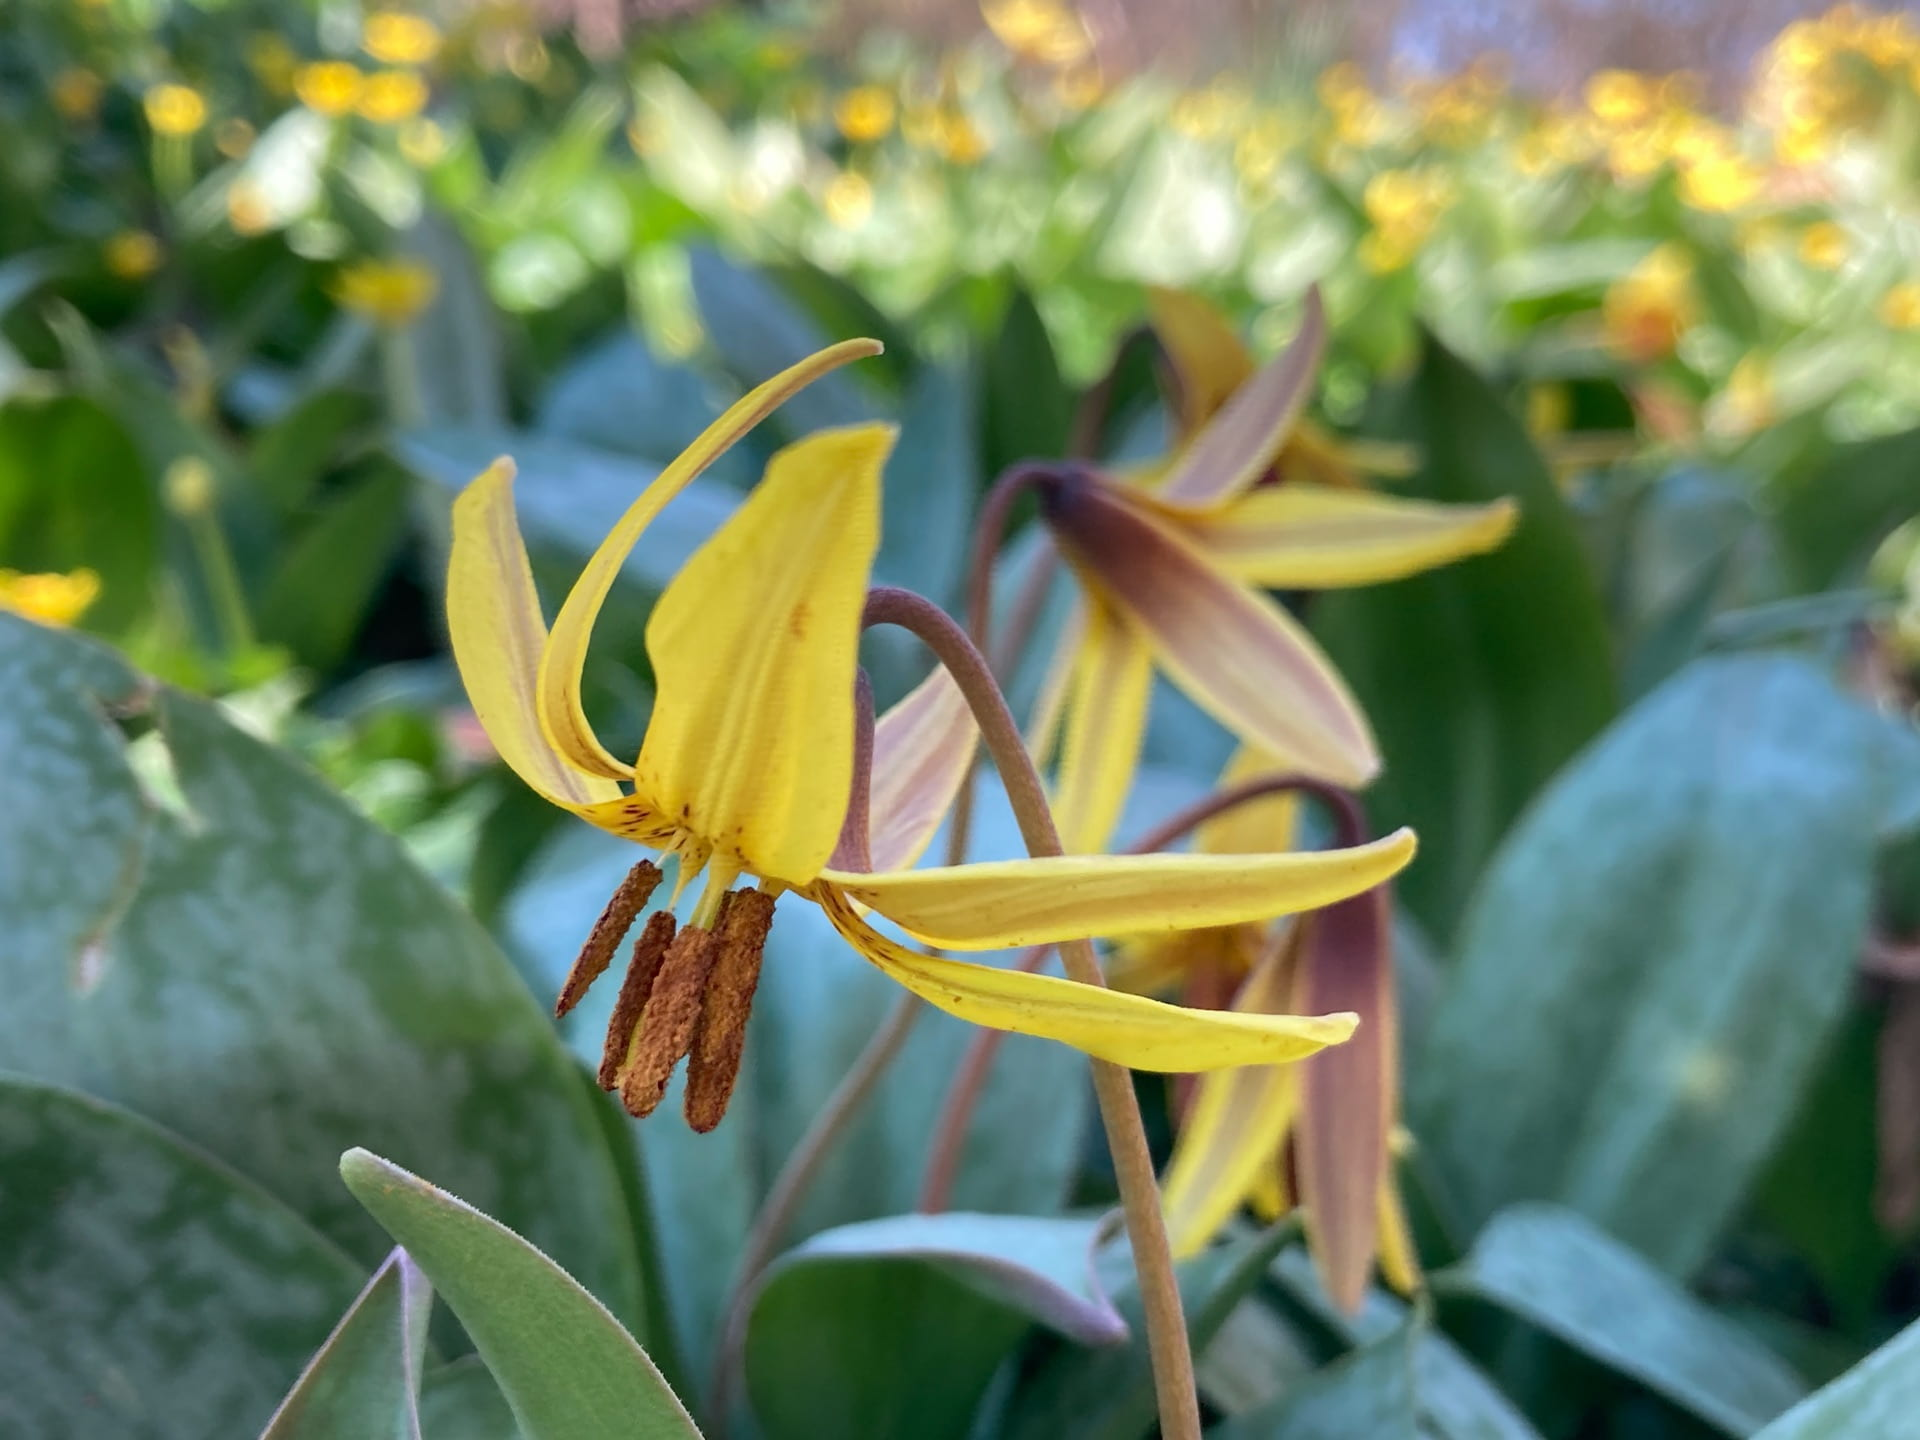 Spring ephemerals, like Erythronium americanum (the trout lily) take advantage of the spring sunshine in the woodland garden.